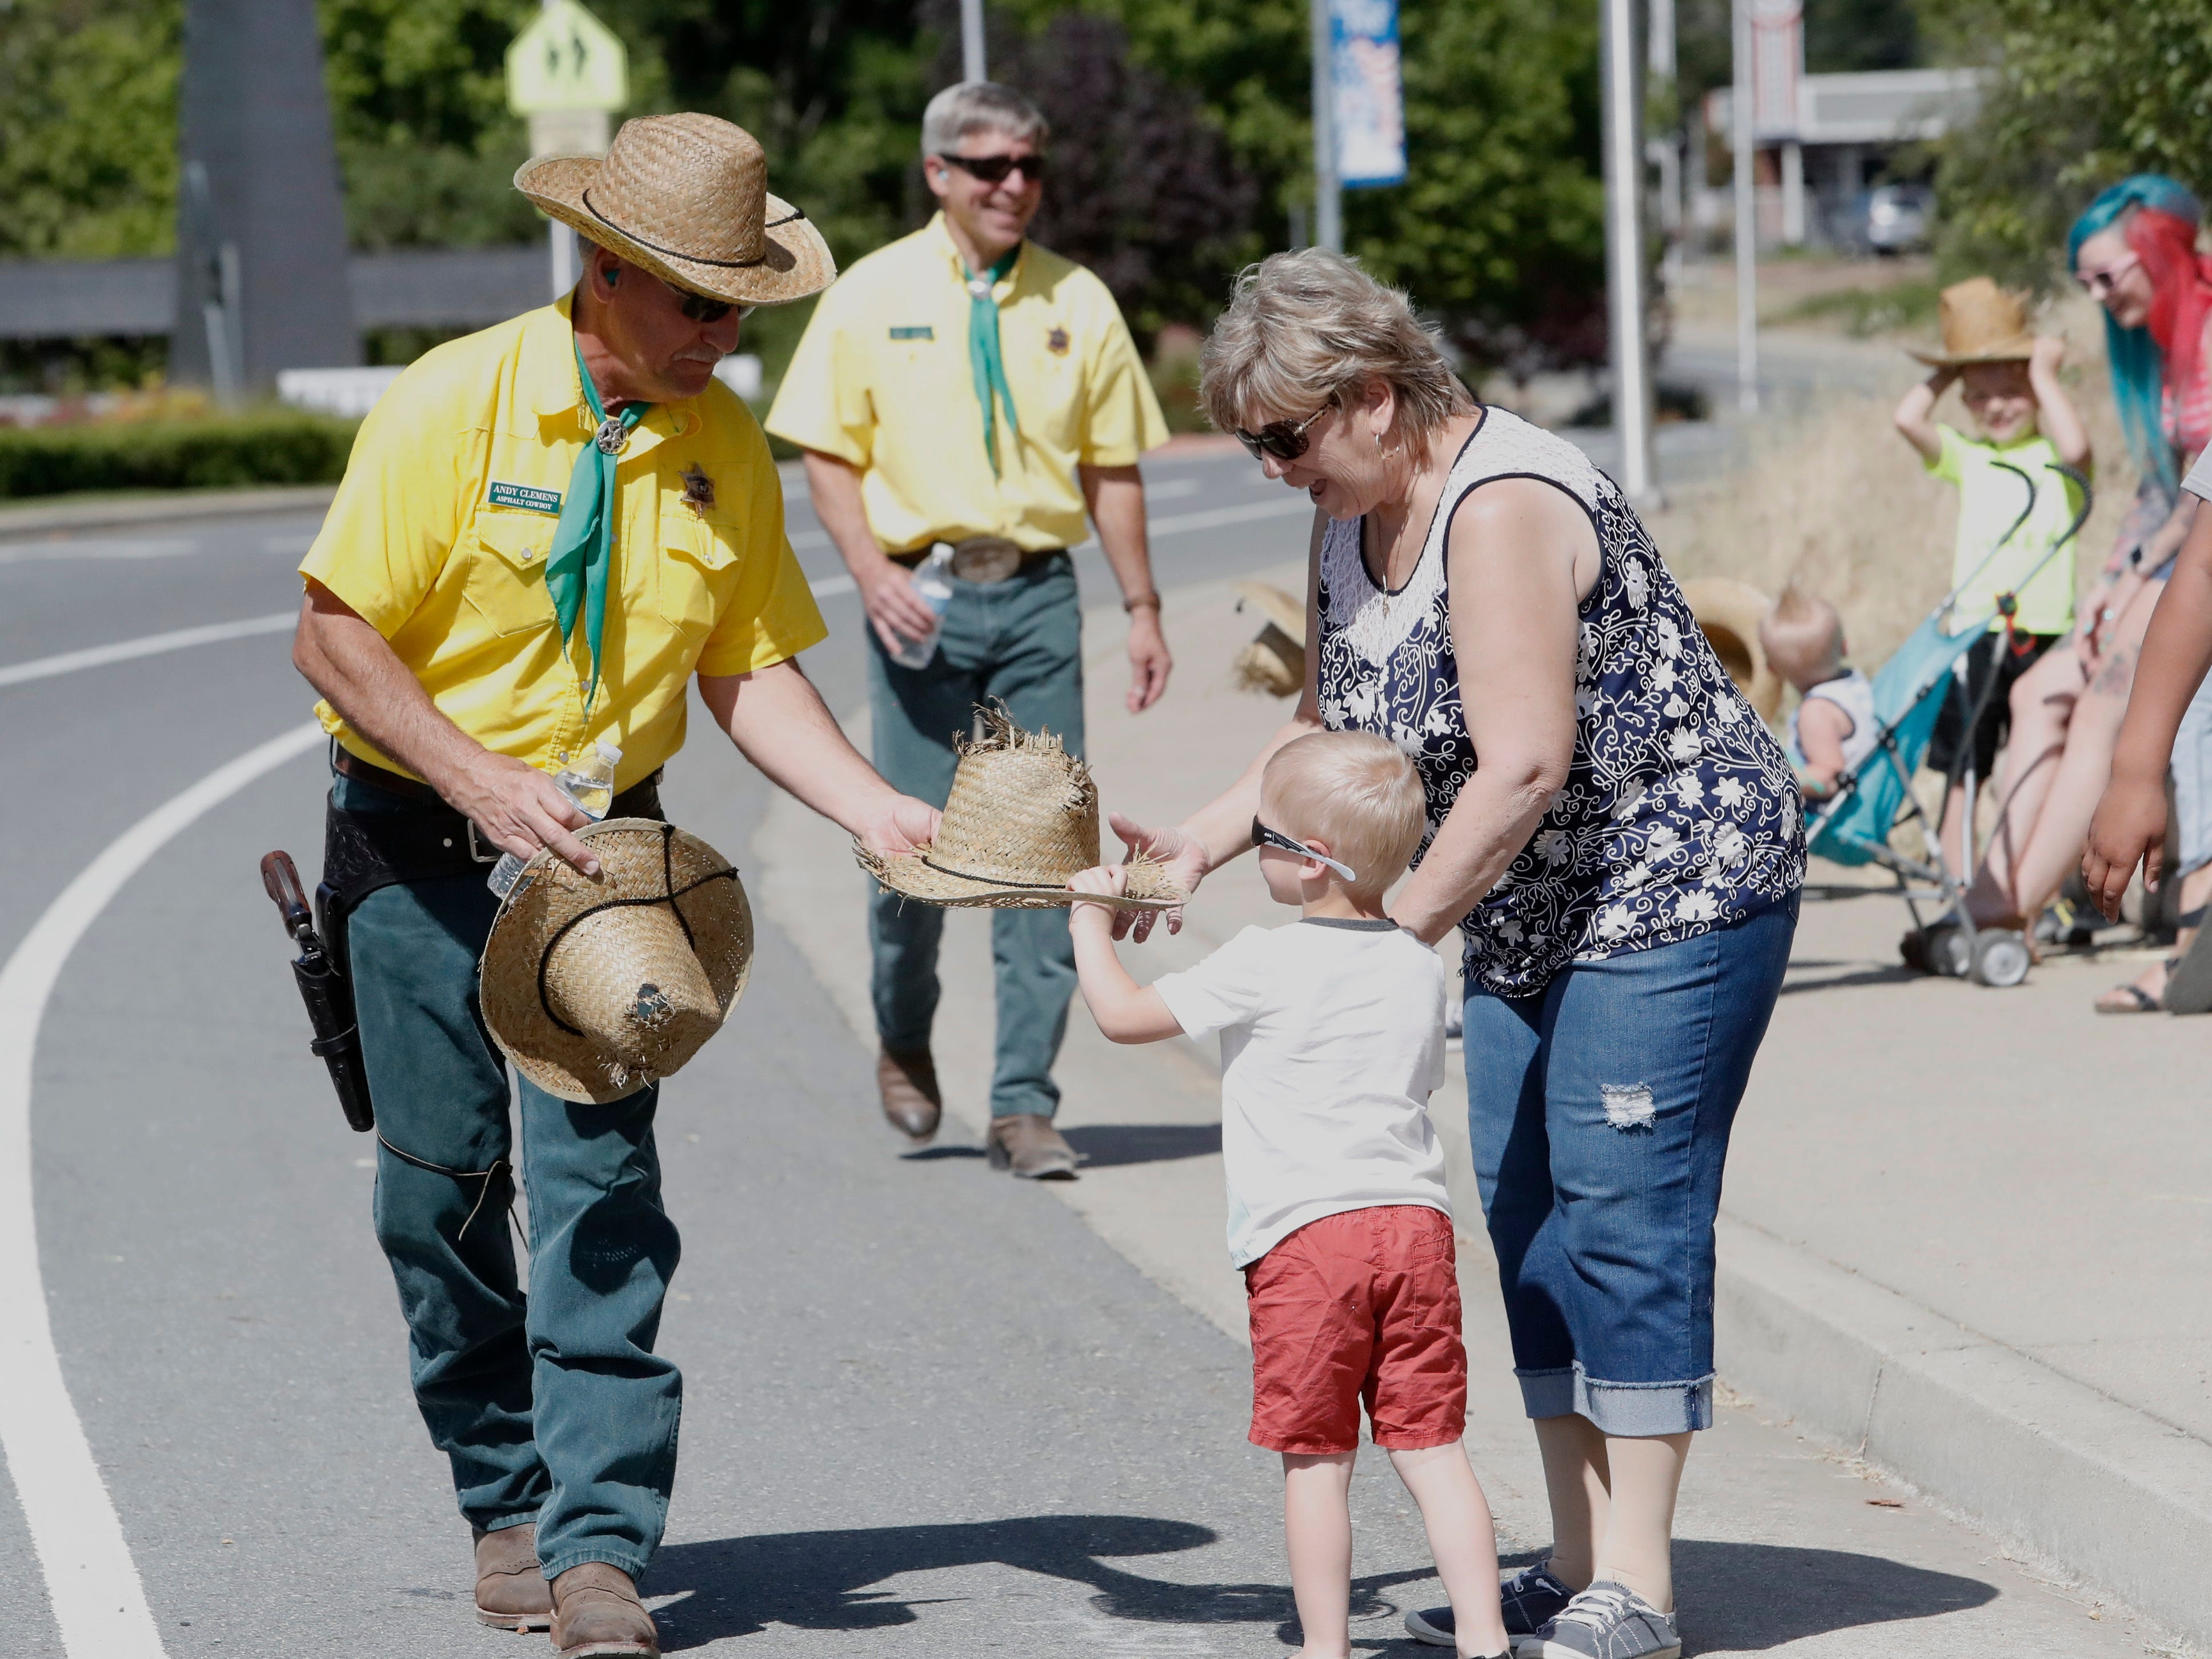 Asphalt Cowboy Andy Clemens hands a straw hat with its top shot out to 3-year-old Korben Pavlovich of Redding as grandma Claudia Knerr helps out during the Boomtown Festival parade in Shasta Lake on Saturday, May 4, 2019.